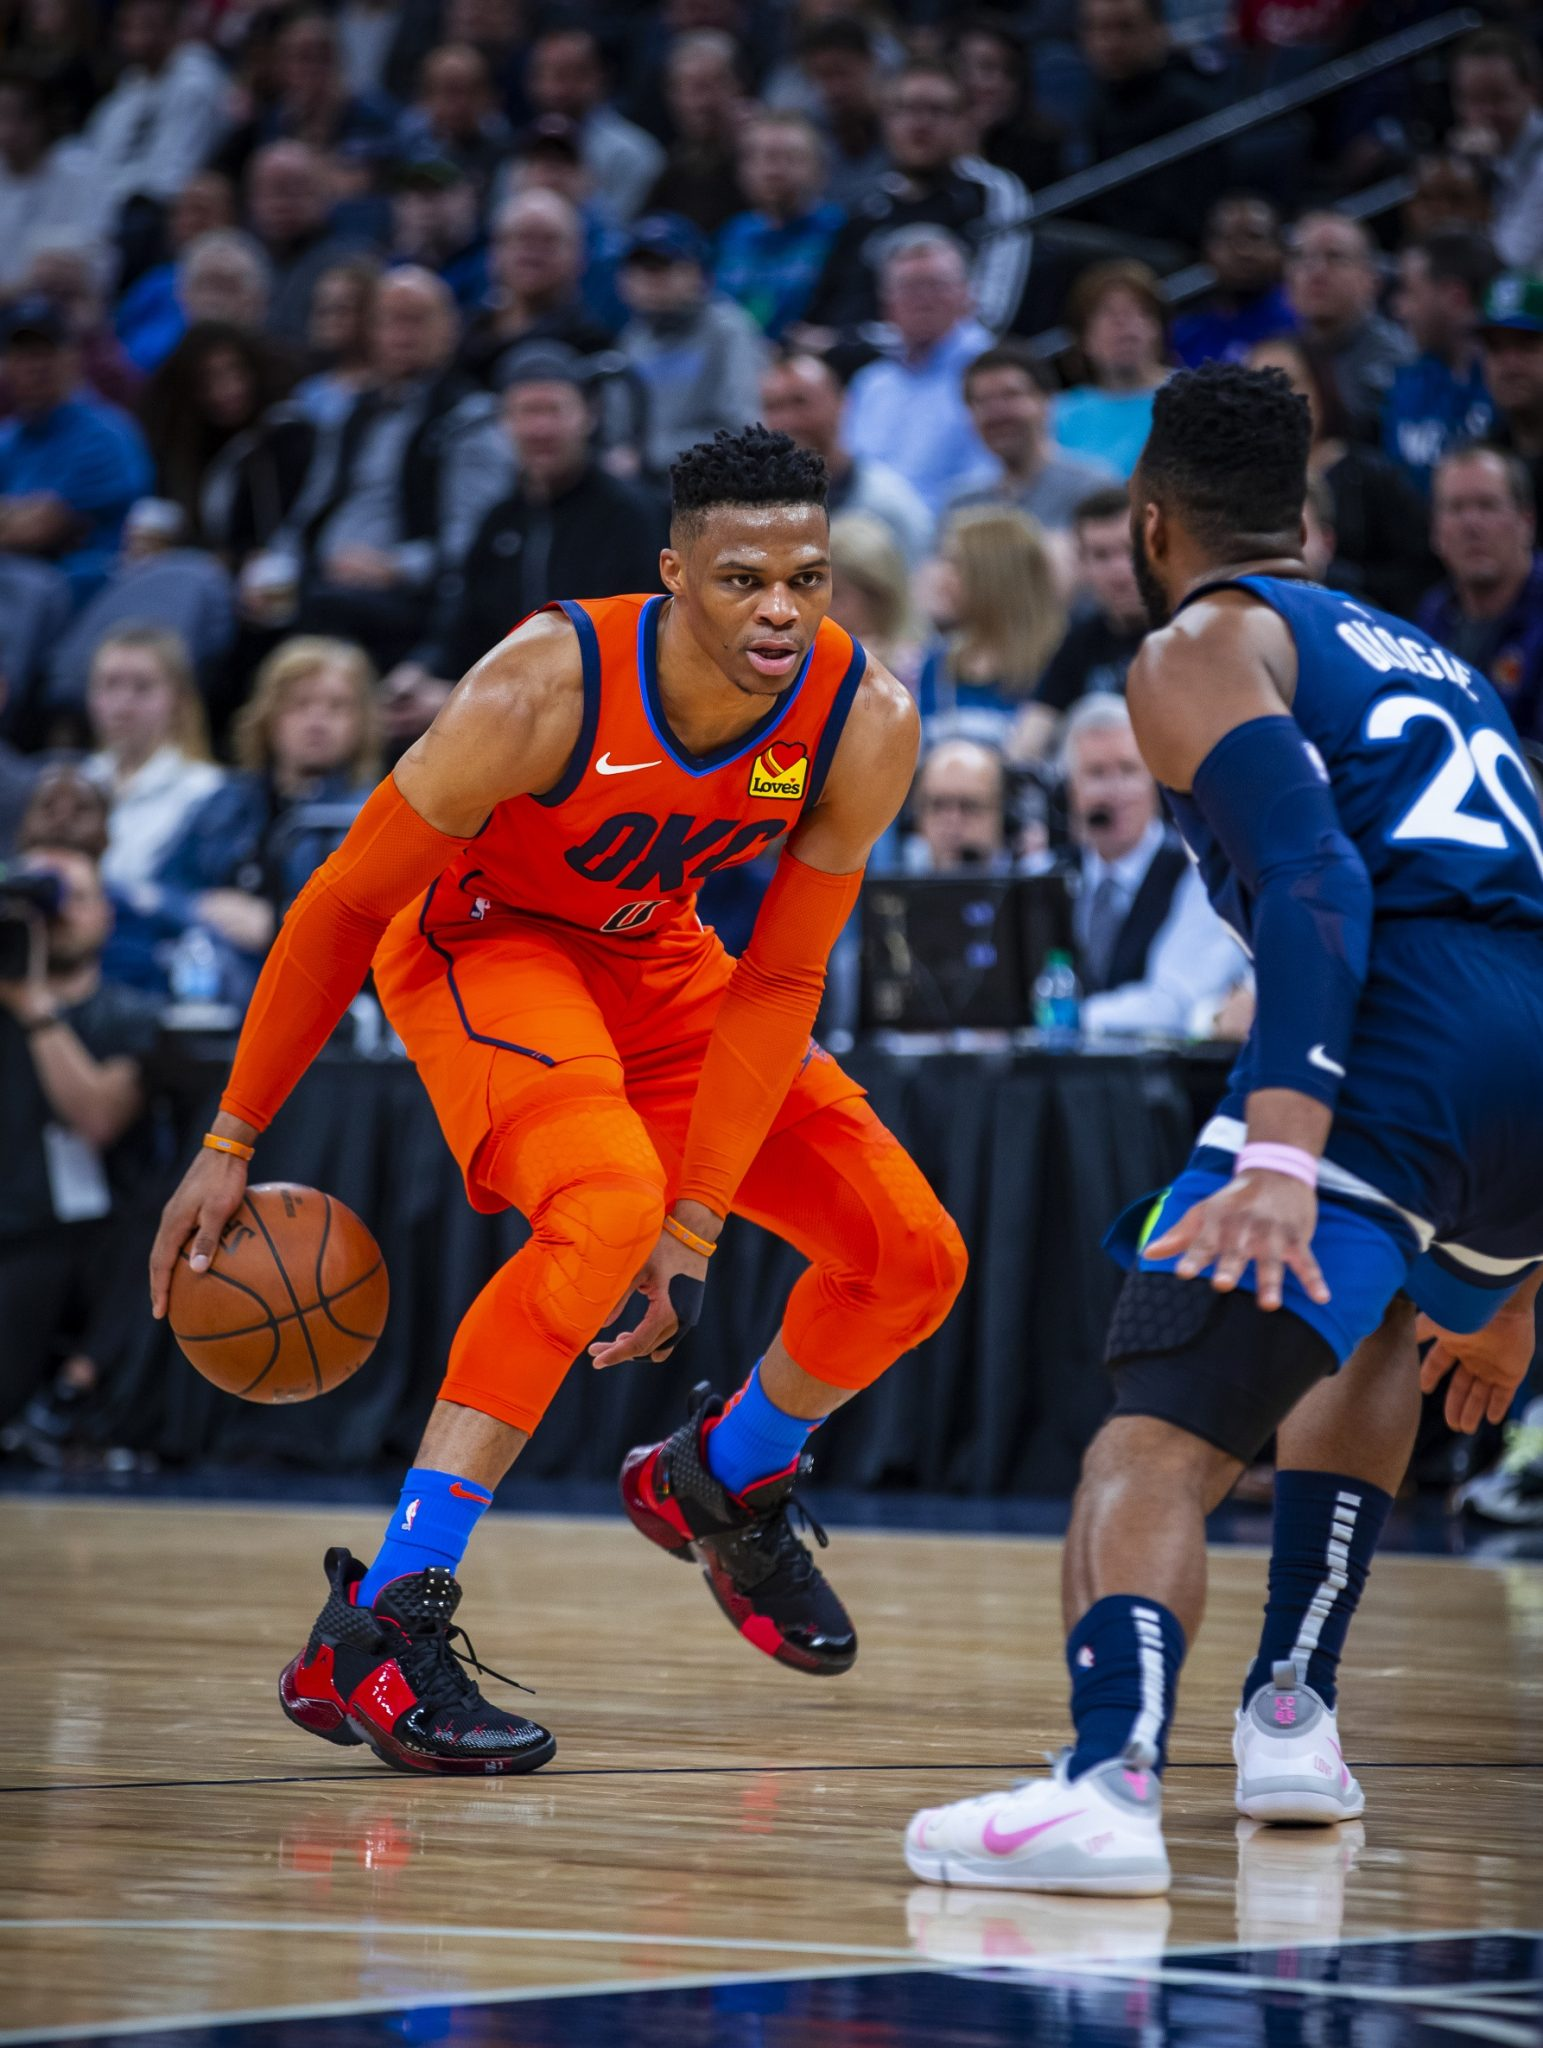 MINNEAPOLIS, MN - APRIL 7: Russell Westbrook #0 of the Oklahoma City Thunder handles the ball against the Minnesota Timberwolves on April 7, 2019 at Target Center in Minneapolis, Minnesota.  Copyright 2019 NBAE (Photo by Zach Beeker/NBAE via Getty Images)